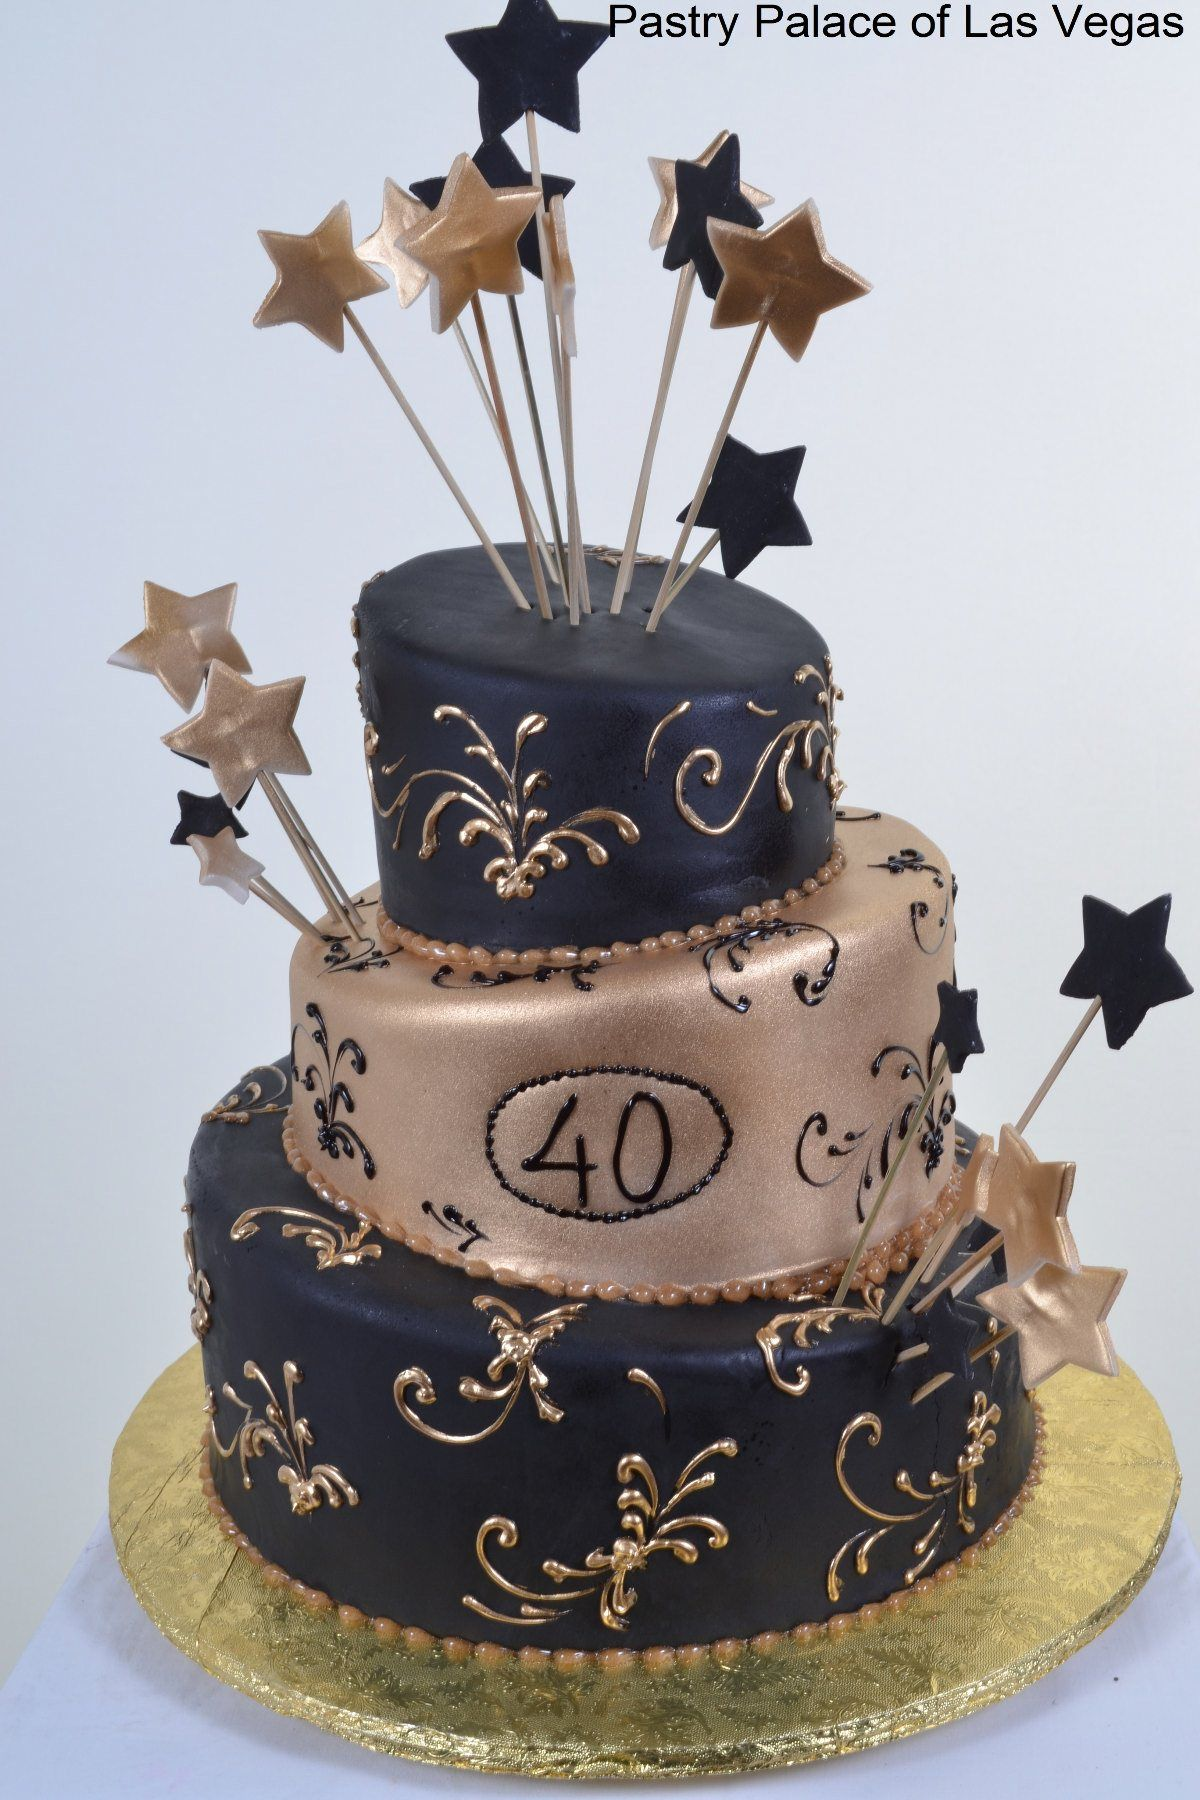 40th birthday cake Just cause I am not having a party doesnt mean